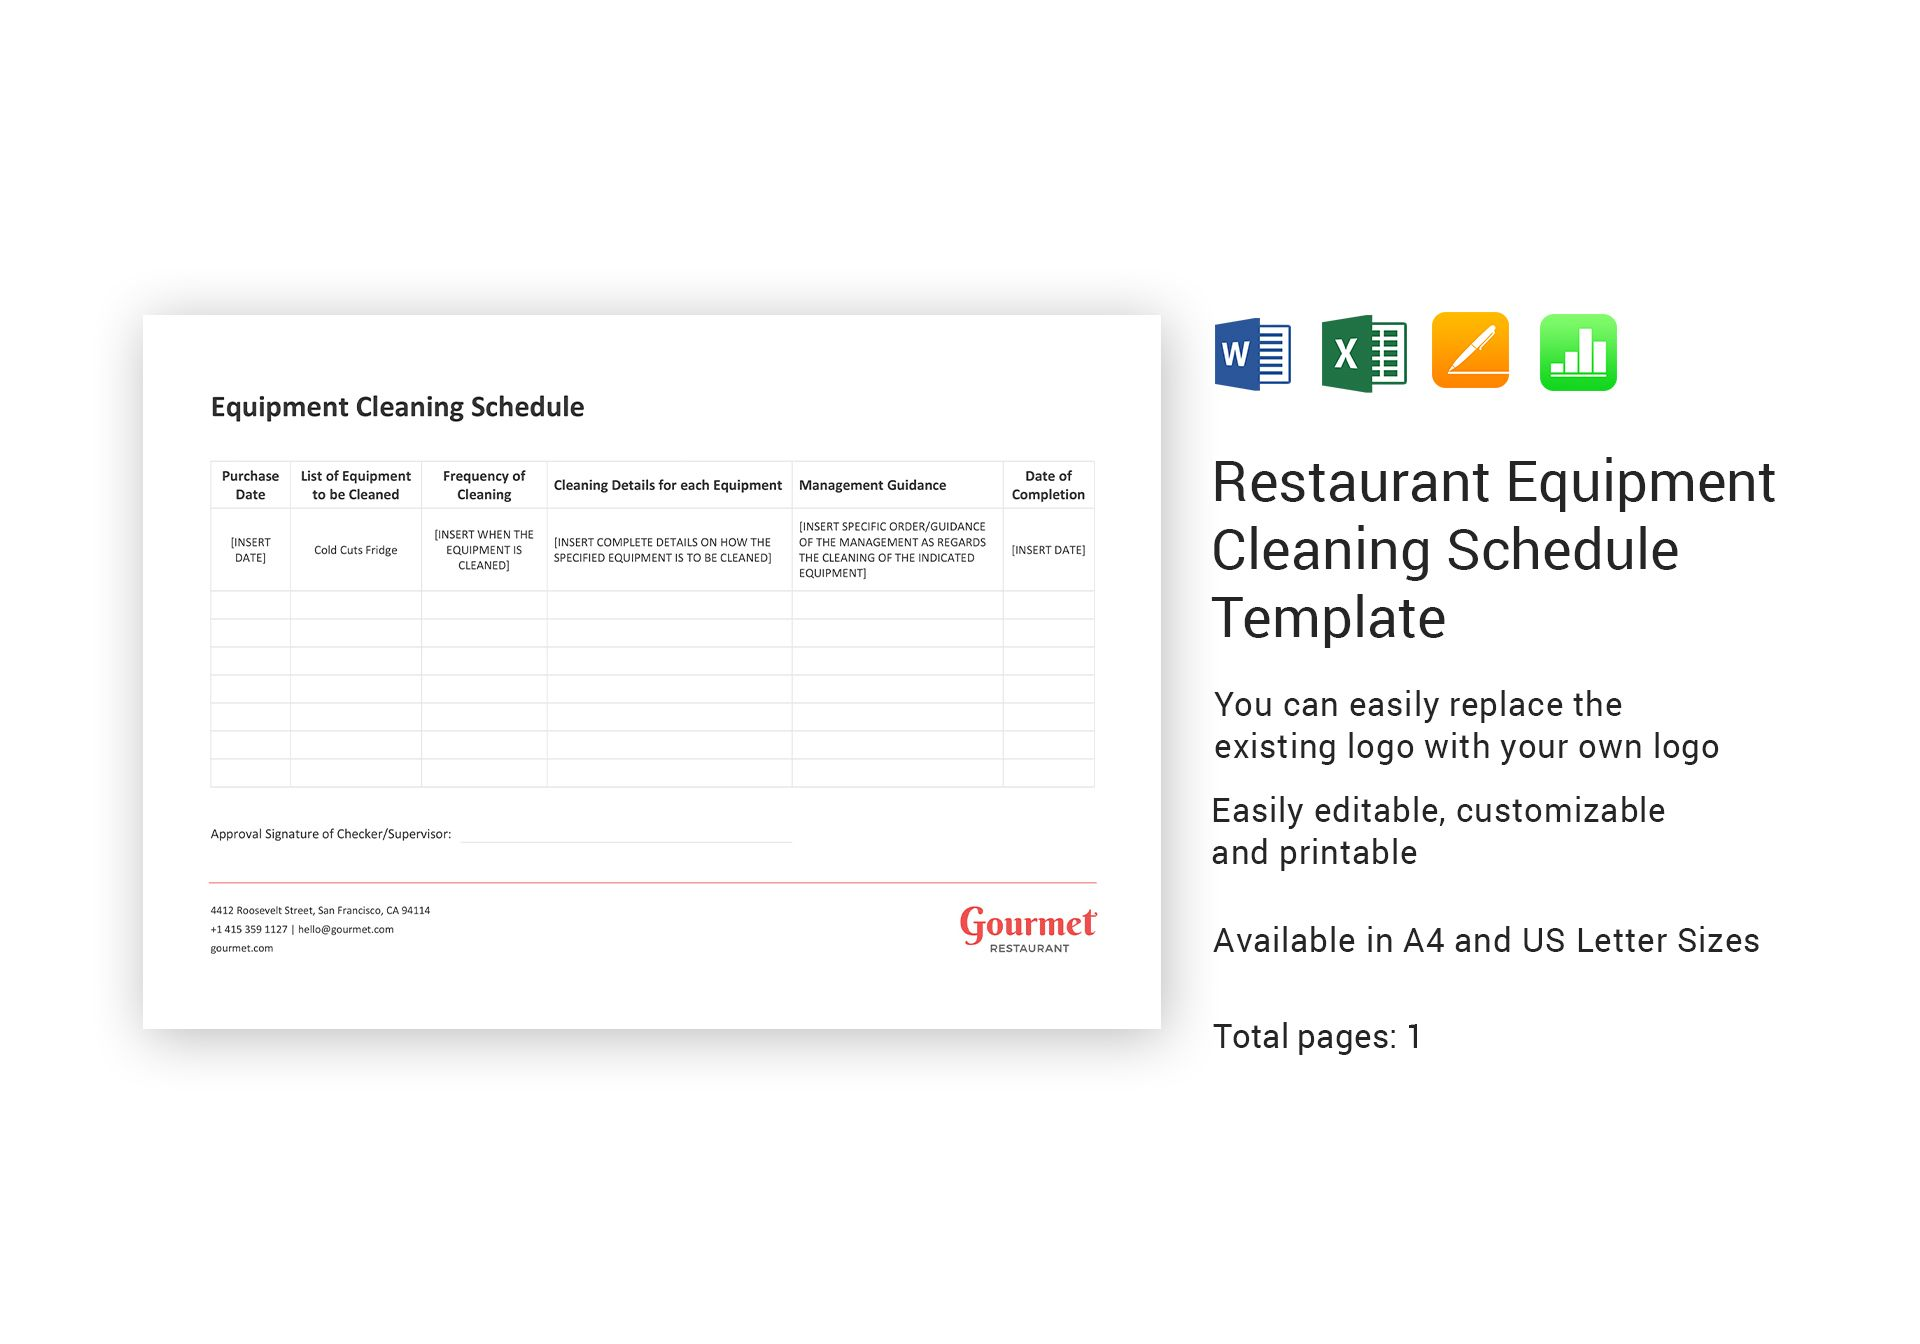 Restaurant Equipment Cleaning Schedule